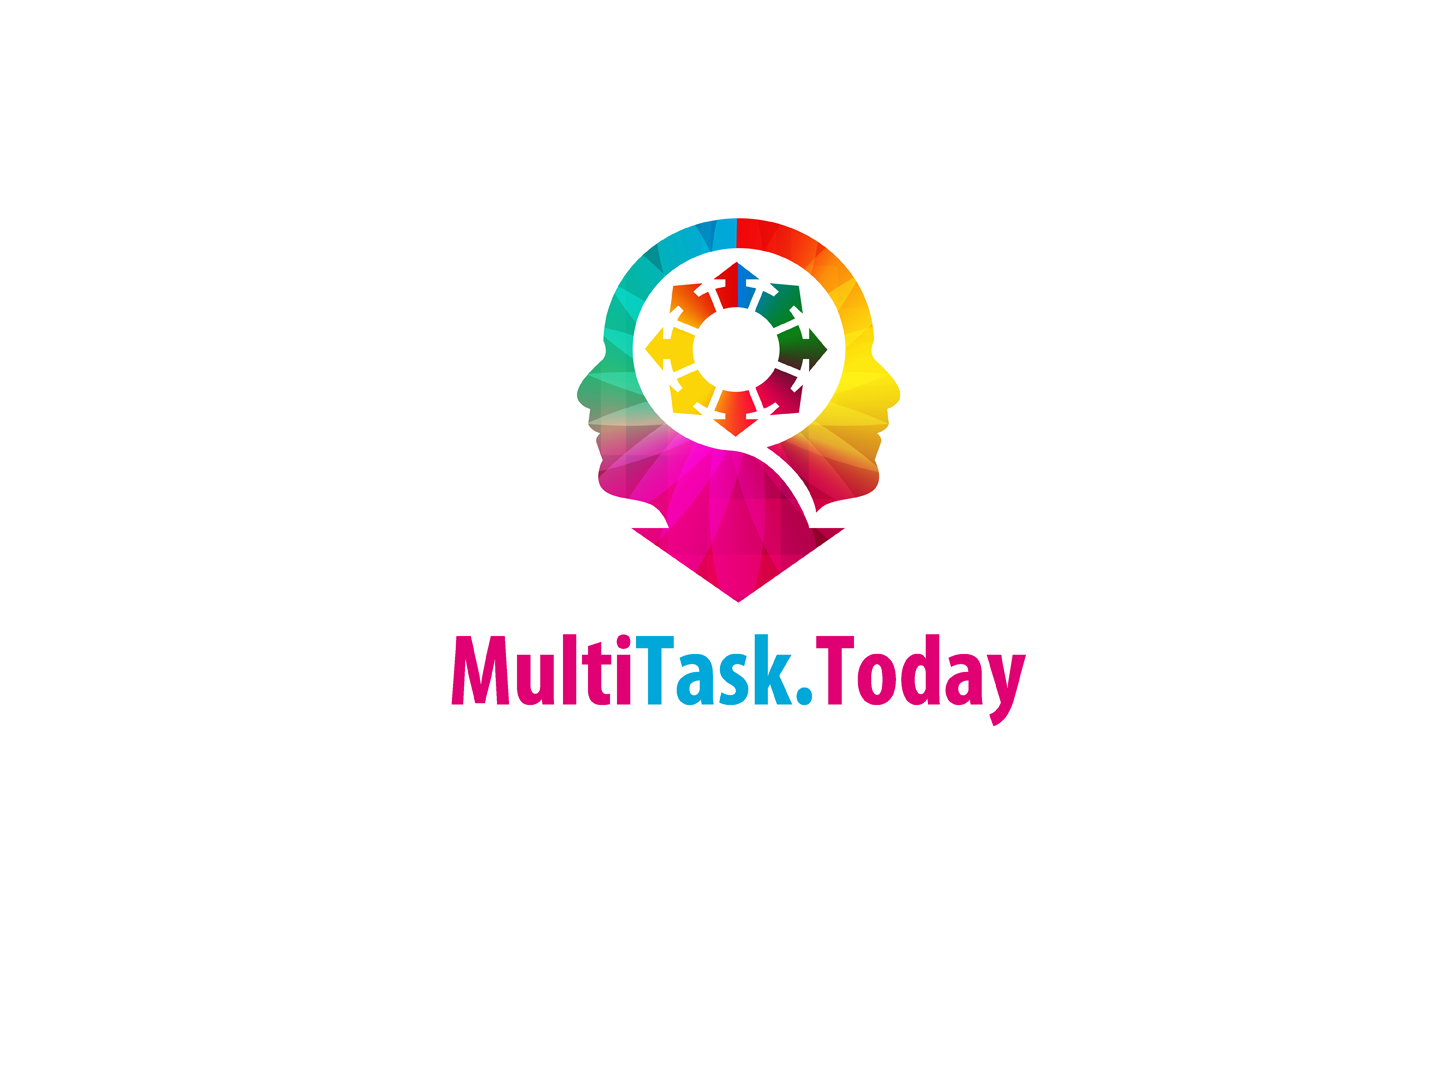 Create a logo for a mobile app that allows group multi-tasking.